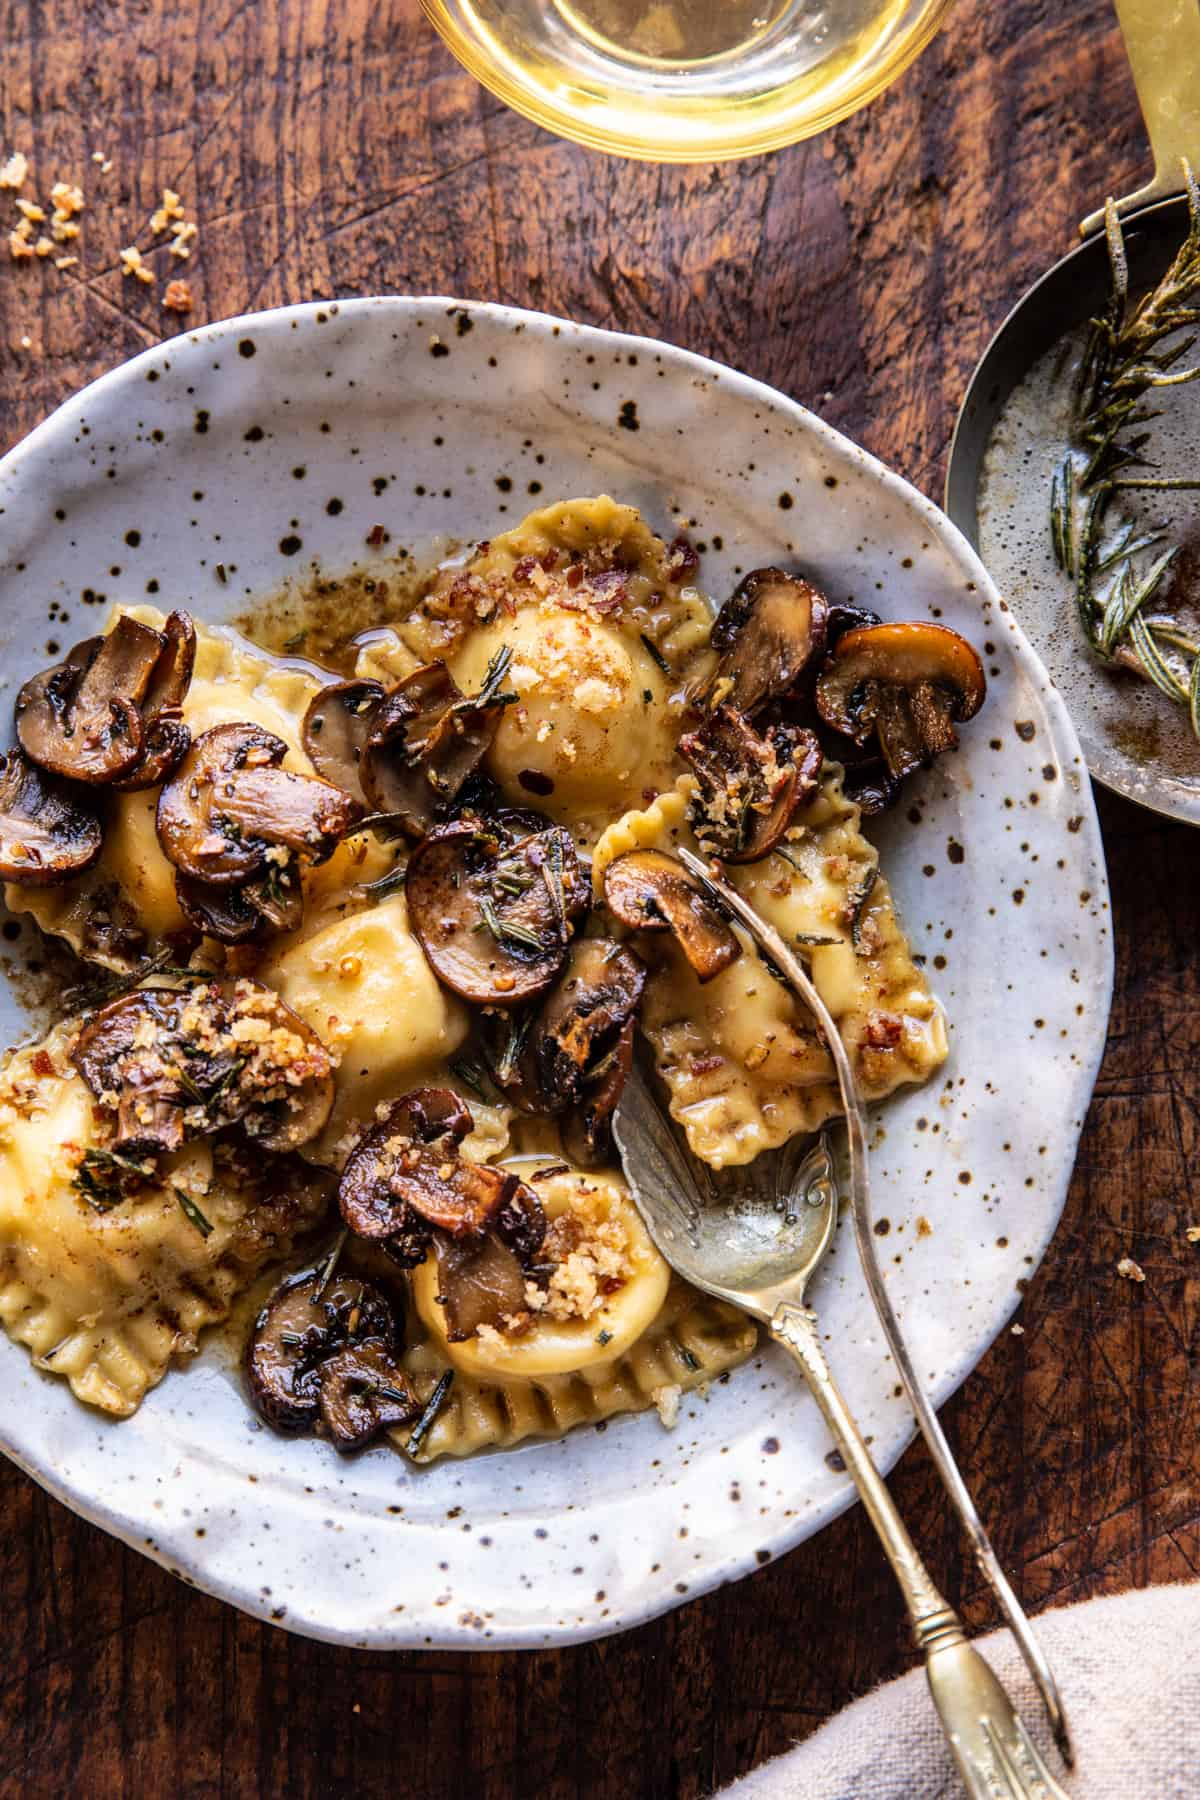 mushrooms and raviolis on a speckled ceramic dish.